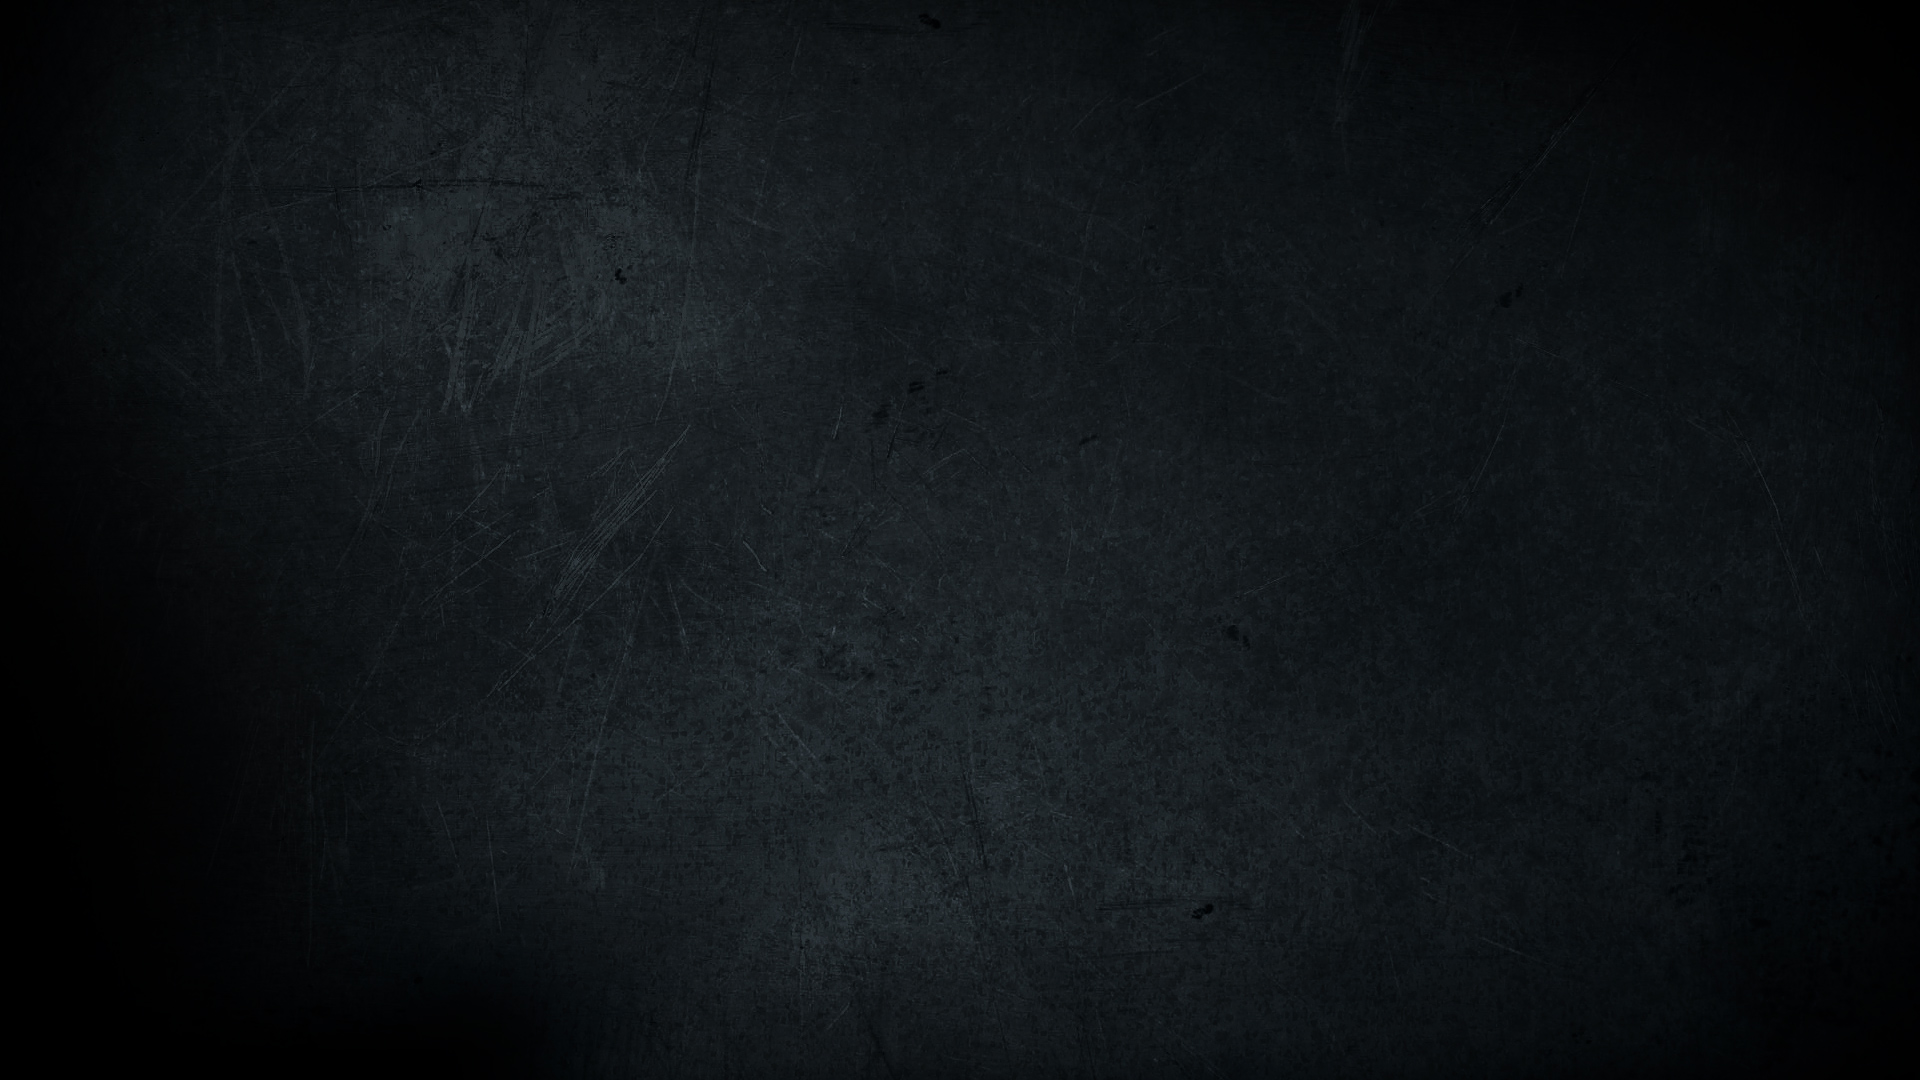 Minimalist Metal Wallpaper by malkowitch 1920x1080